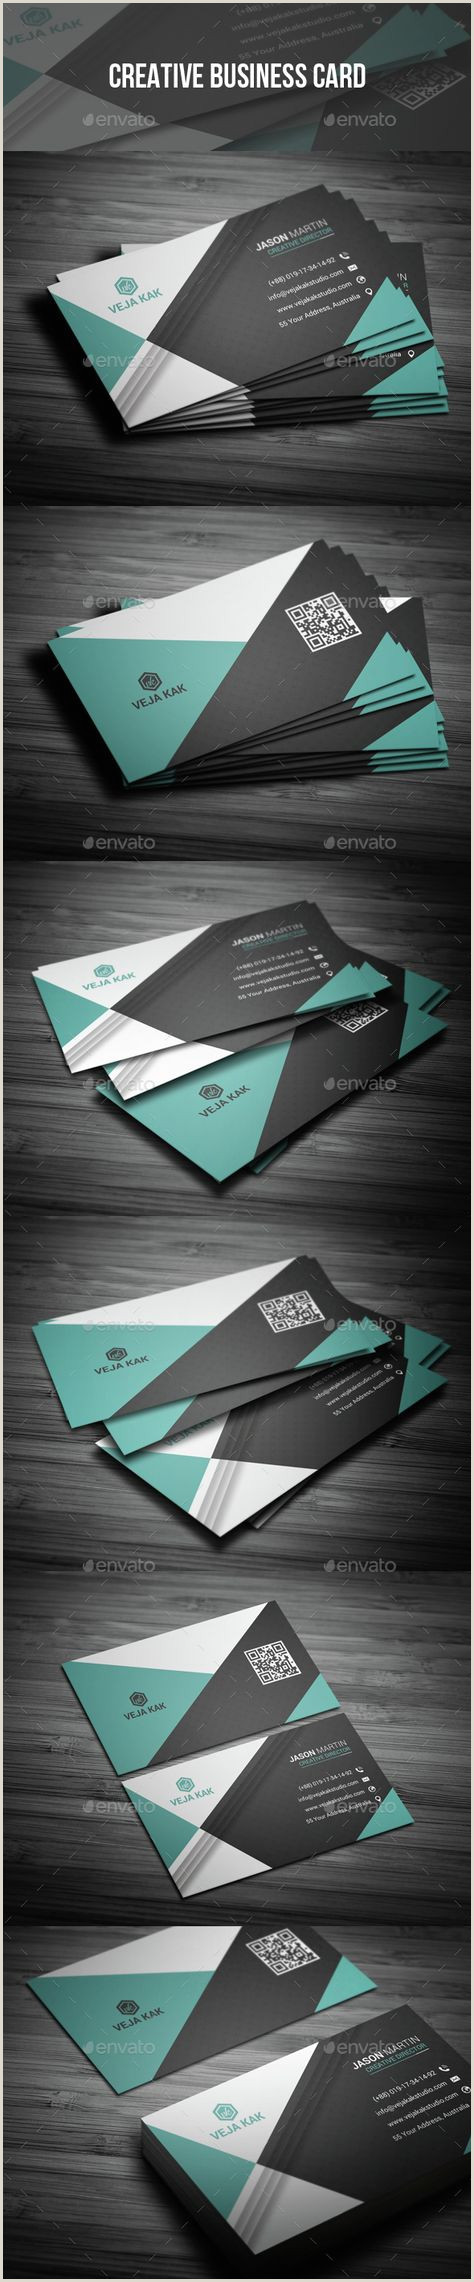 Creative Card Designs 100 Business Cards Ideas